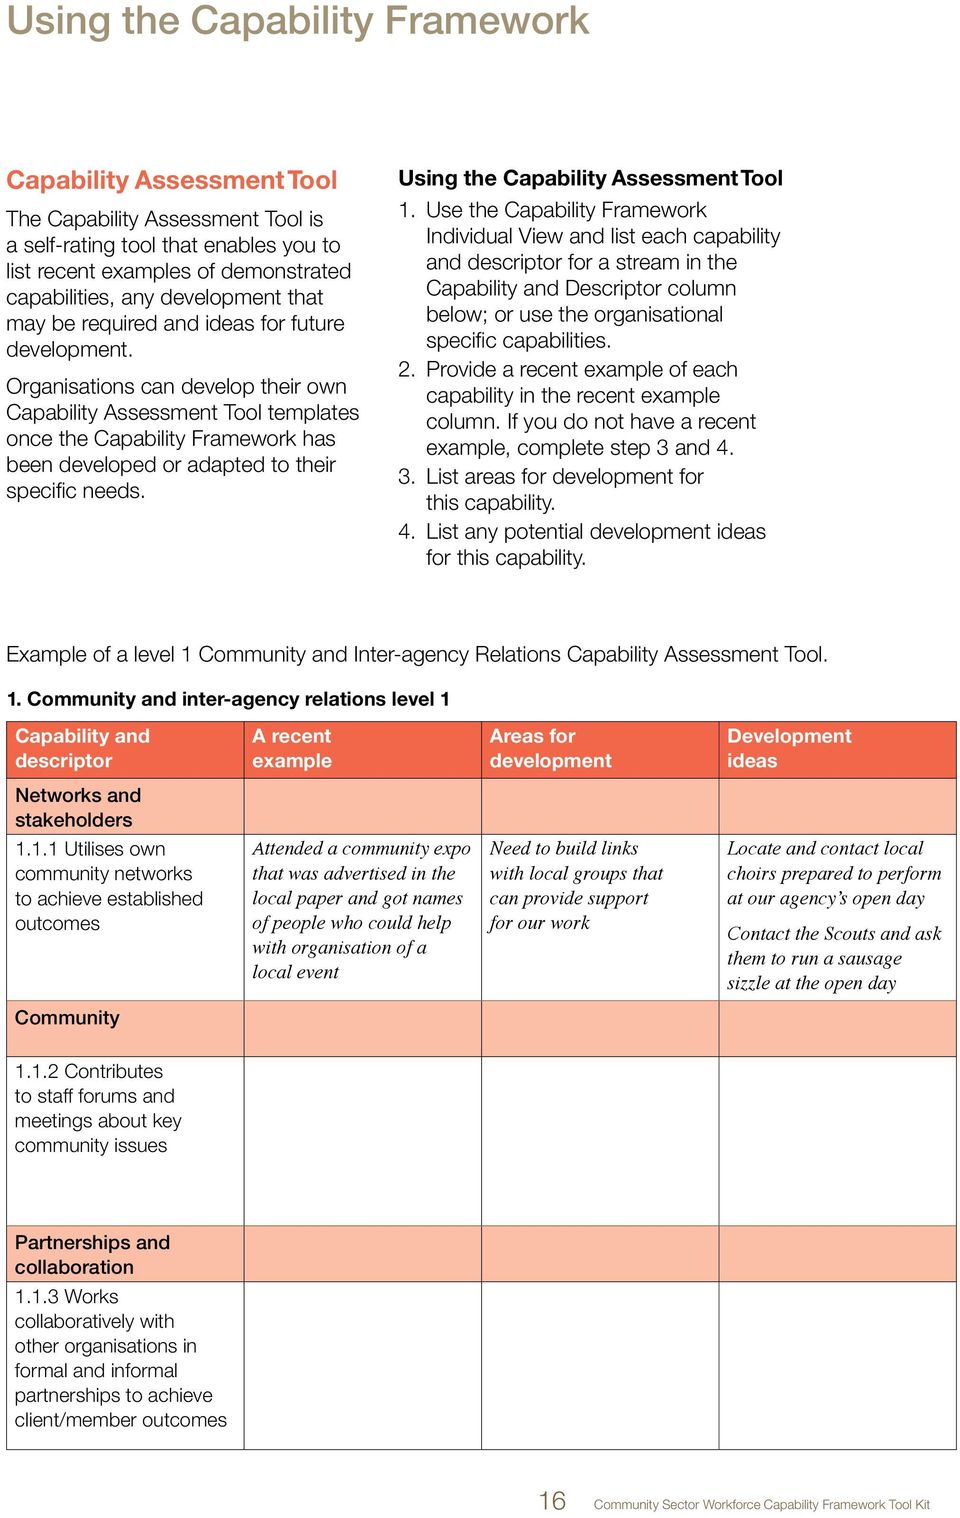 Organisations can develop their own Capability Assessment Tool templates once the Capability Framework has been developed or adapted to their specific needs. Using the Capability Assessment Tool 1.